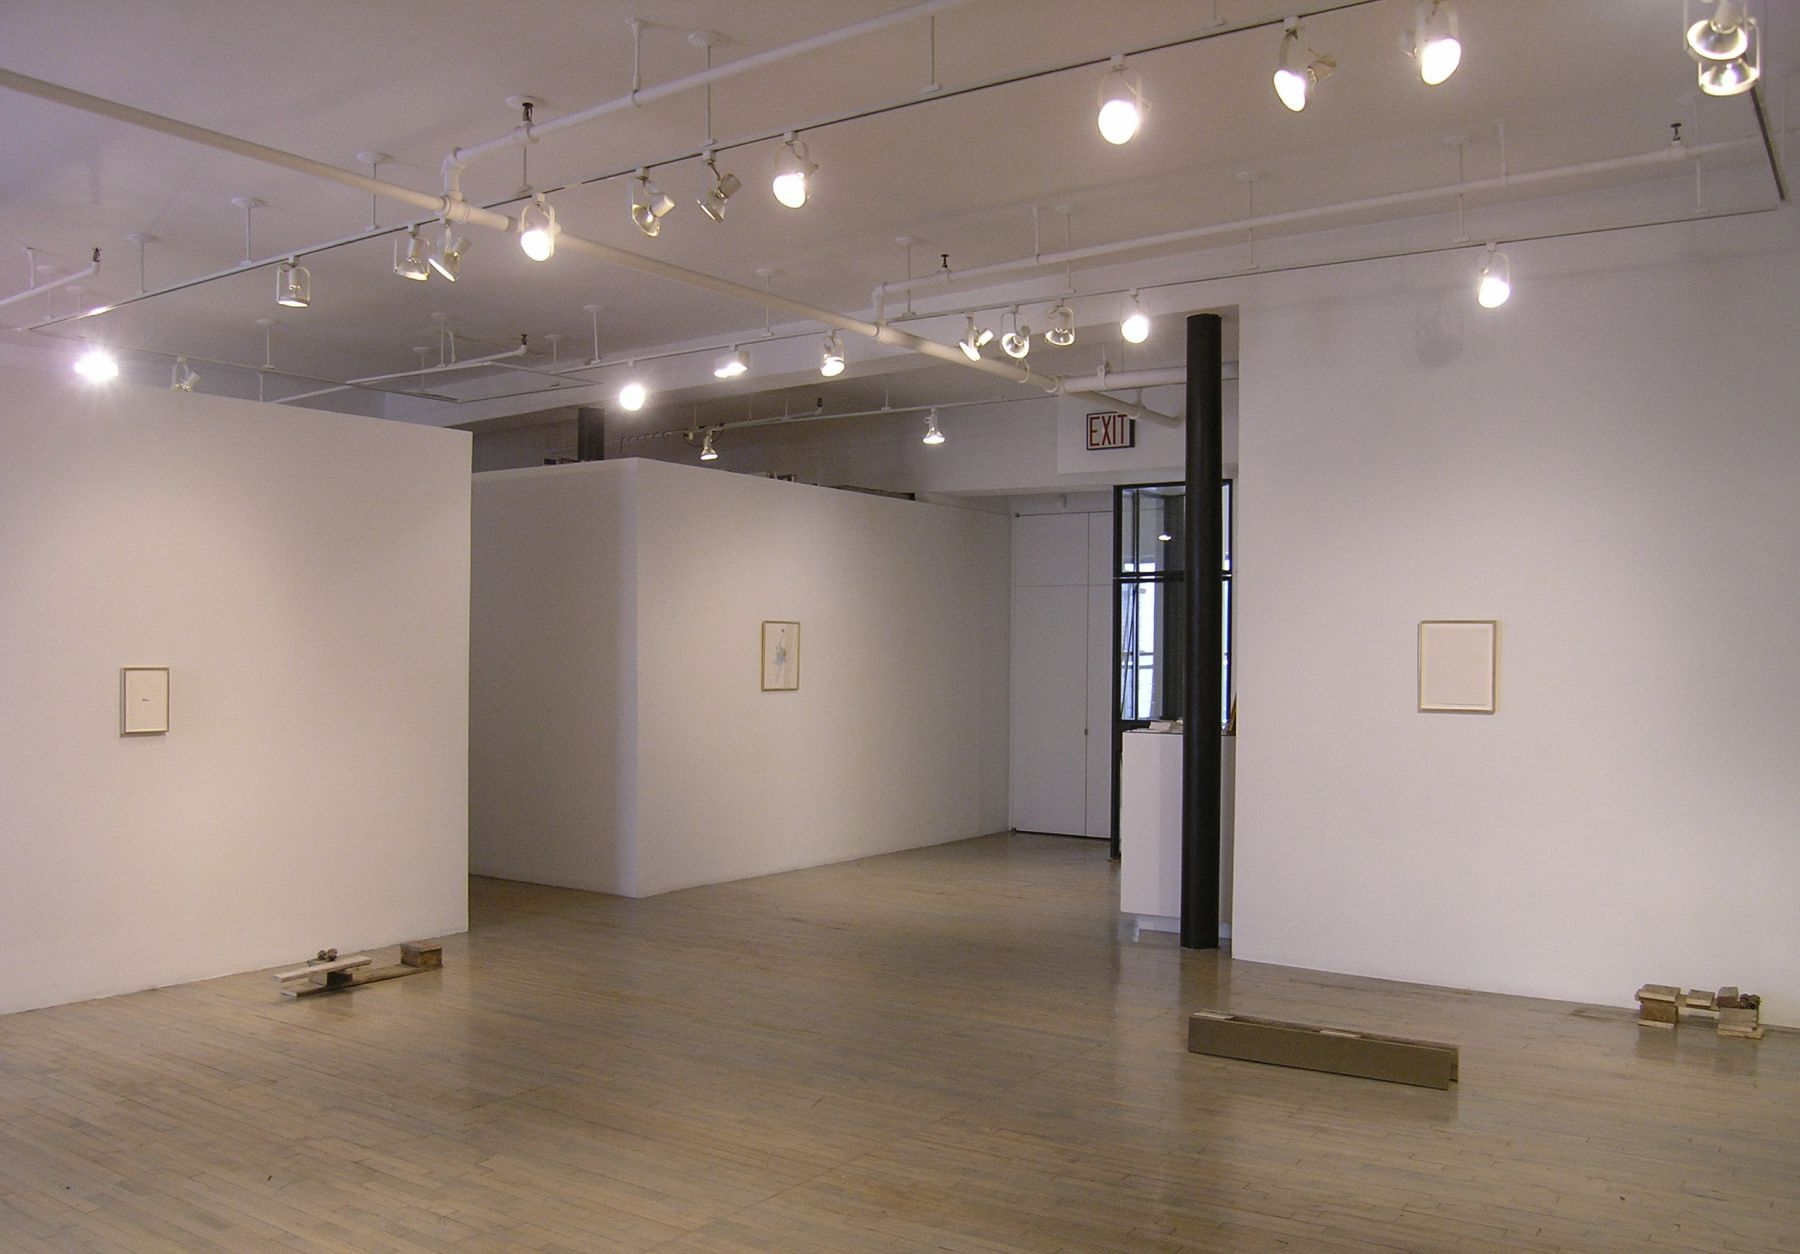 Helen Mirra: Break camp – installation view 2